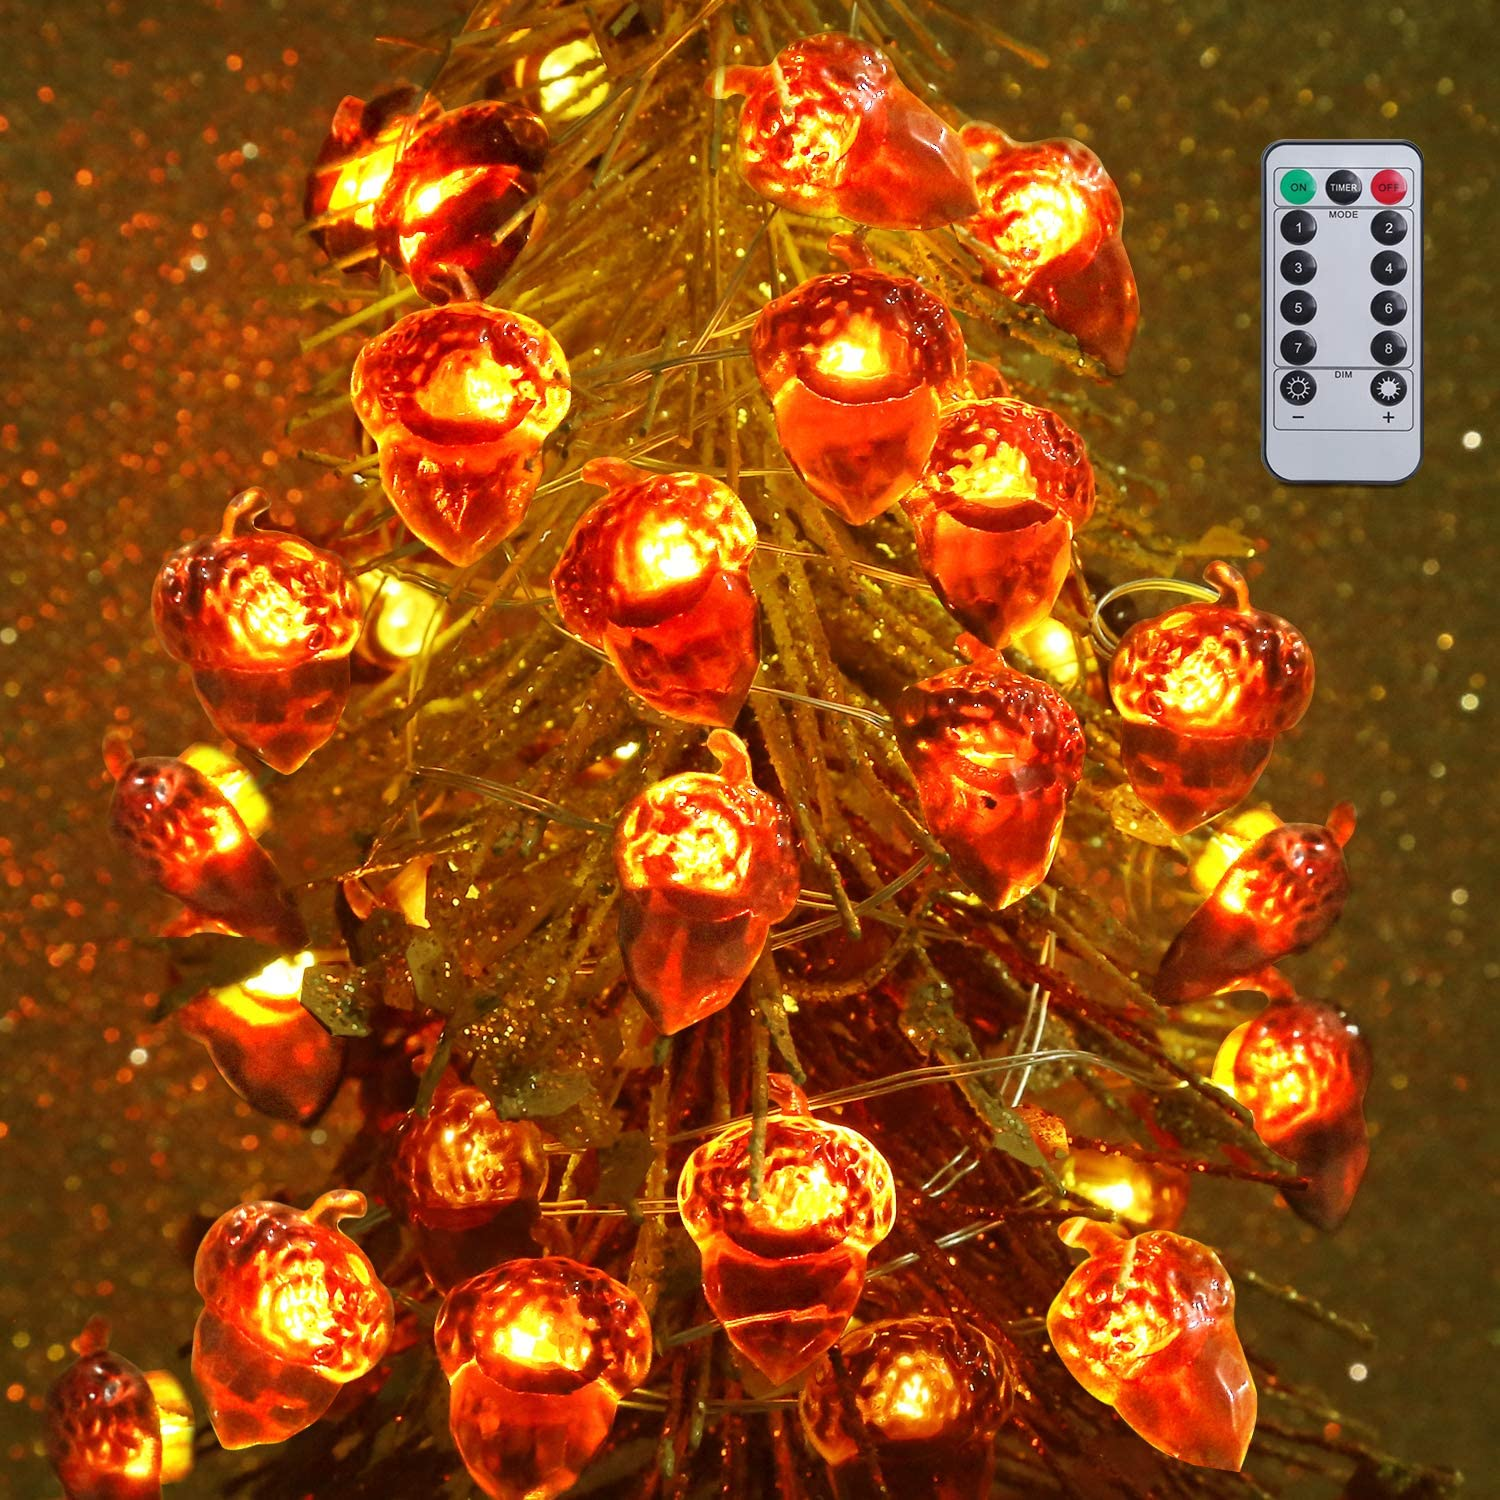 Huishang Fall Decorations, Acorn String Lights with 40 LED, Battery Operated Thanksgiving Lights for Outdoor Indoor Thanksgiving Decor, 8 Flicker Modes, Remote & Timer